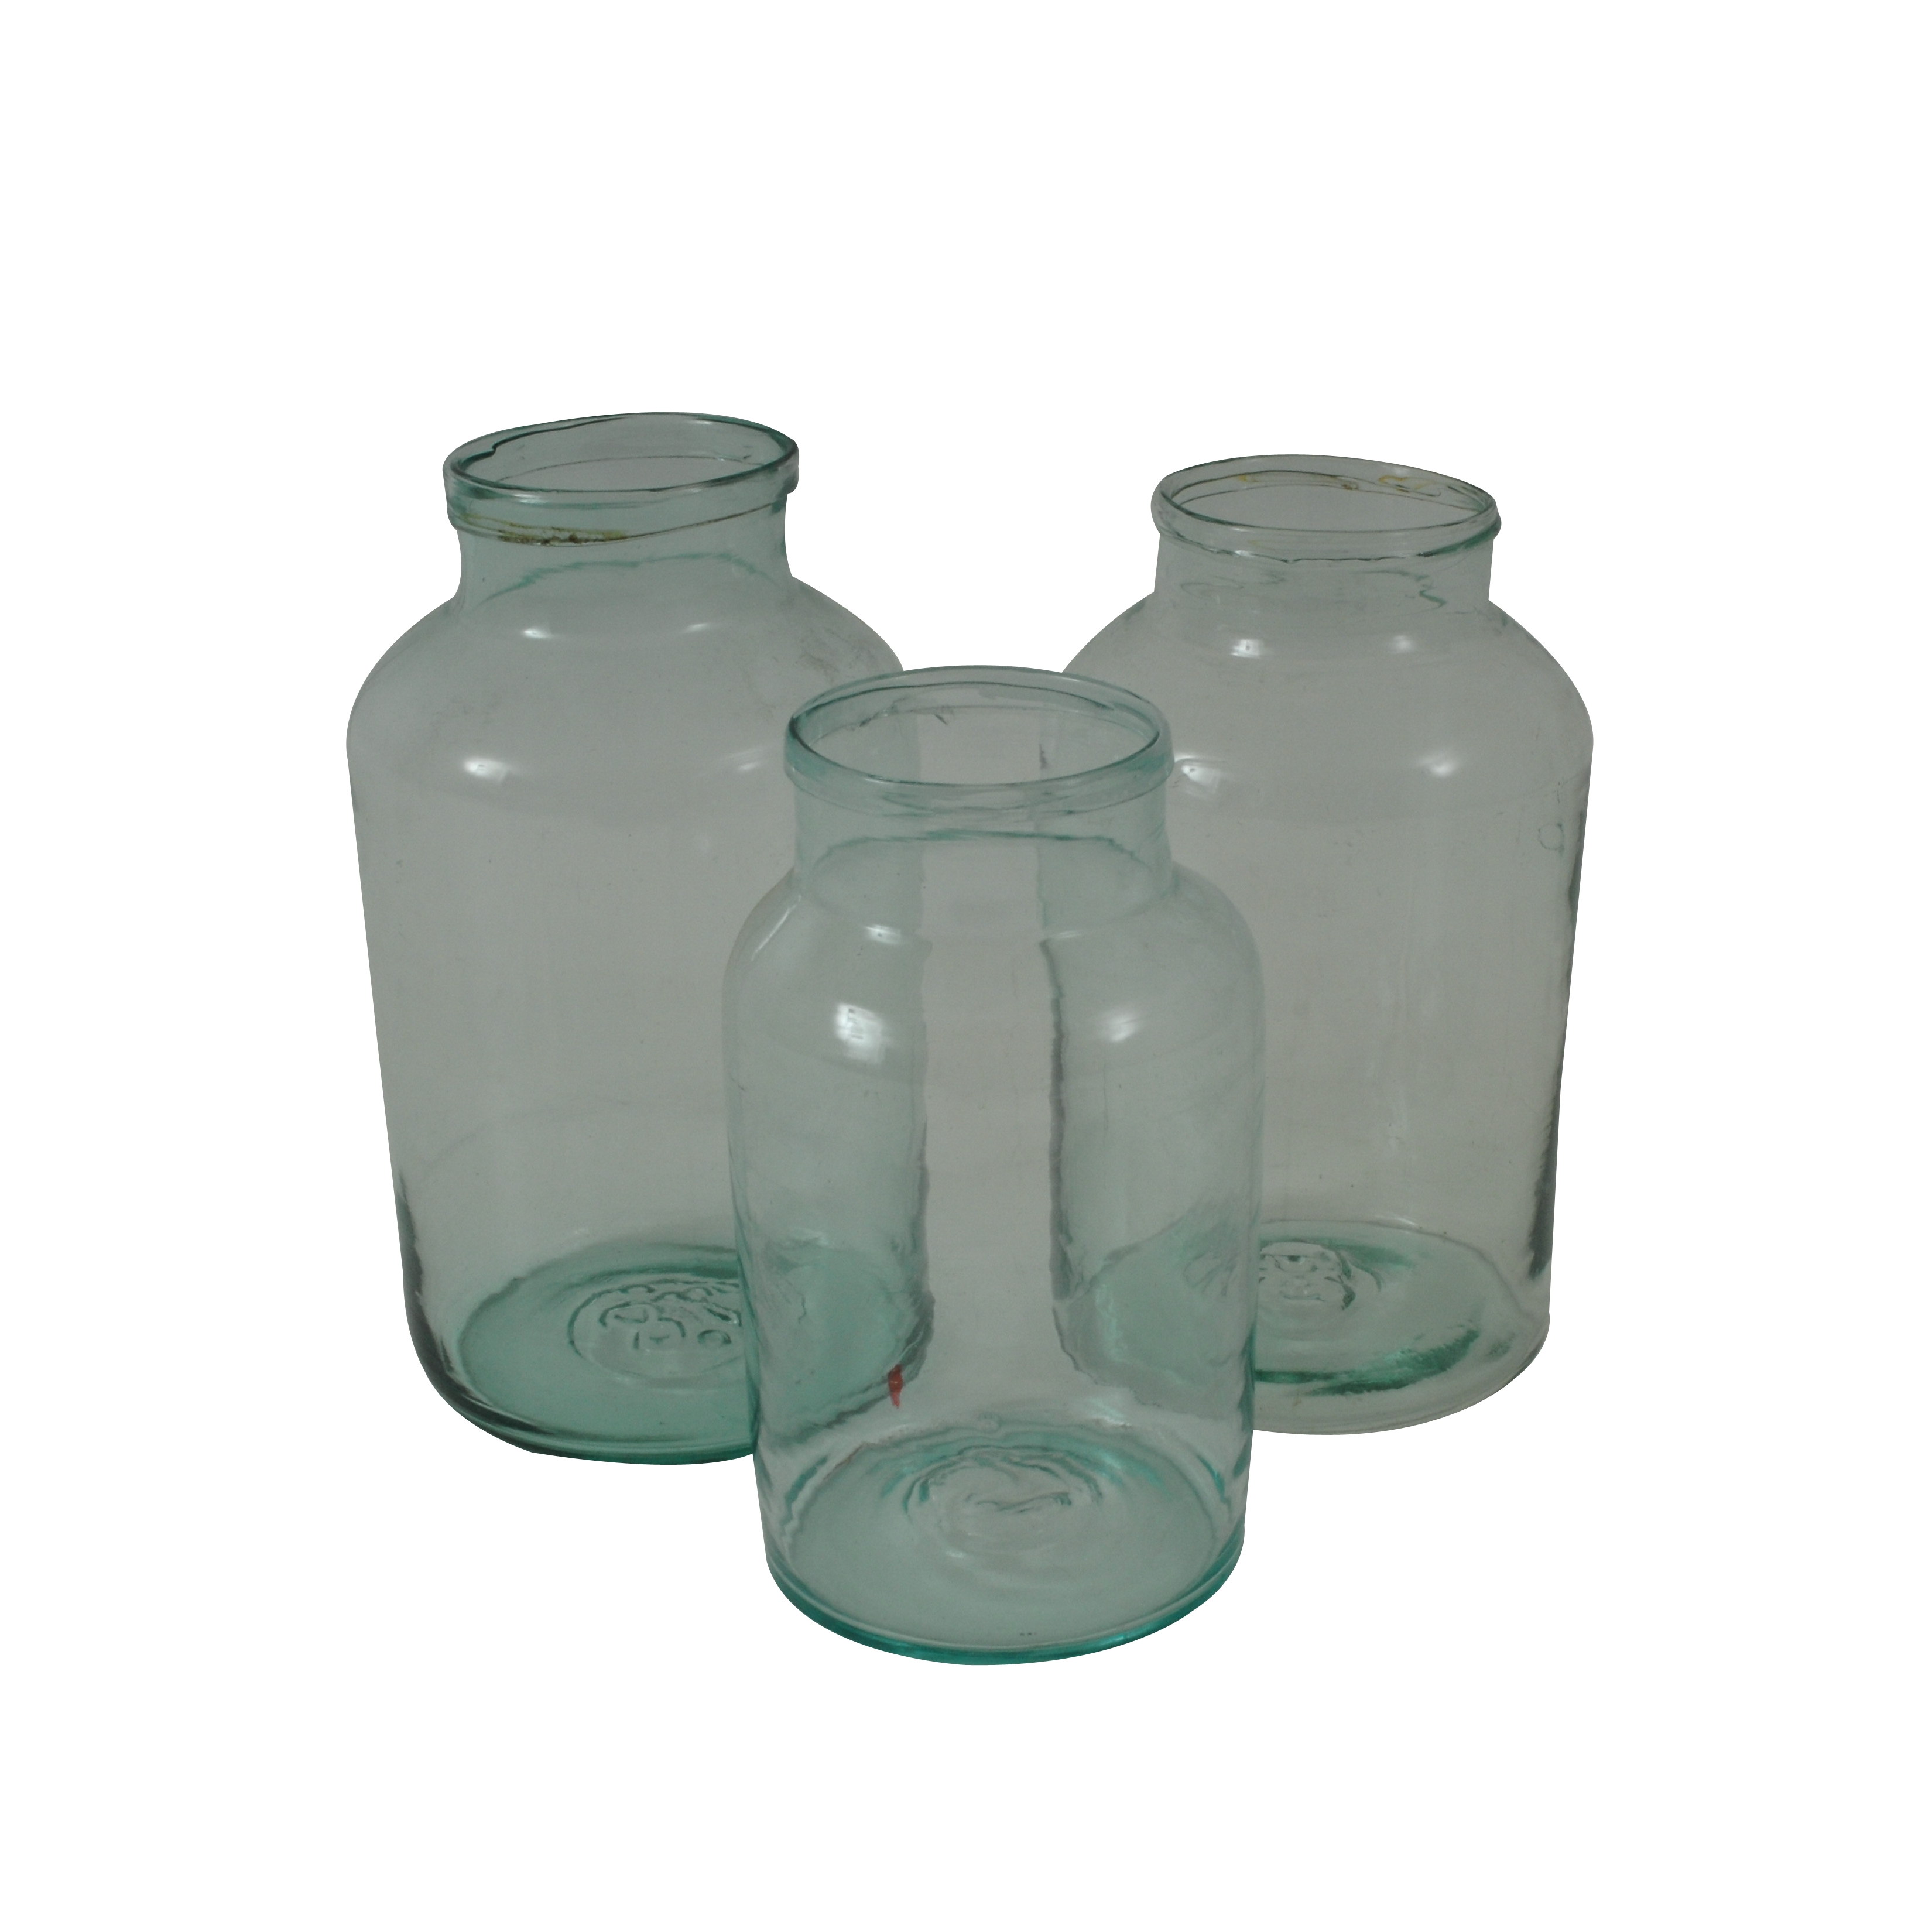 Malden Pickling Jars (set of 3)